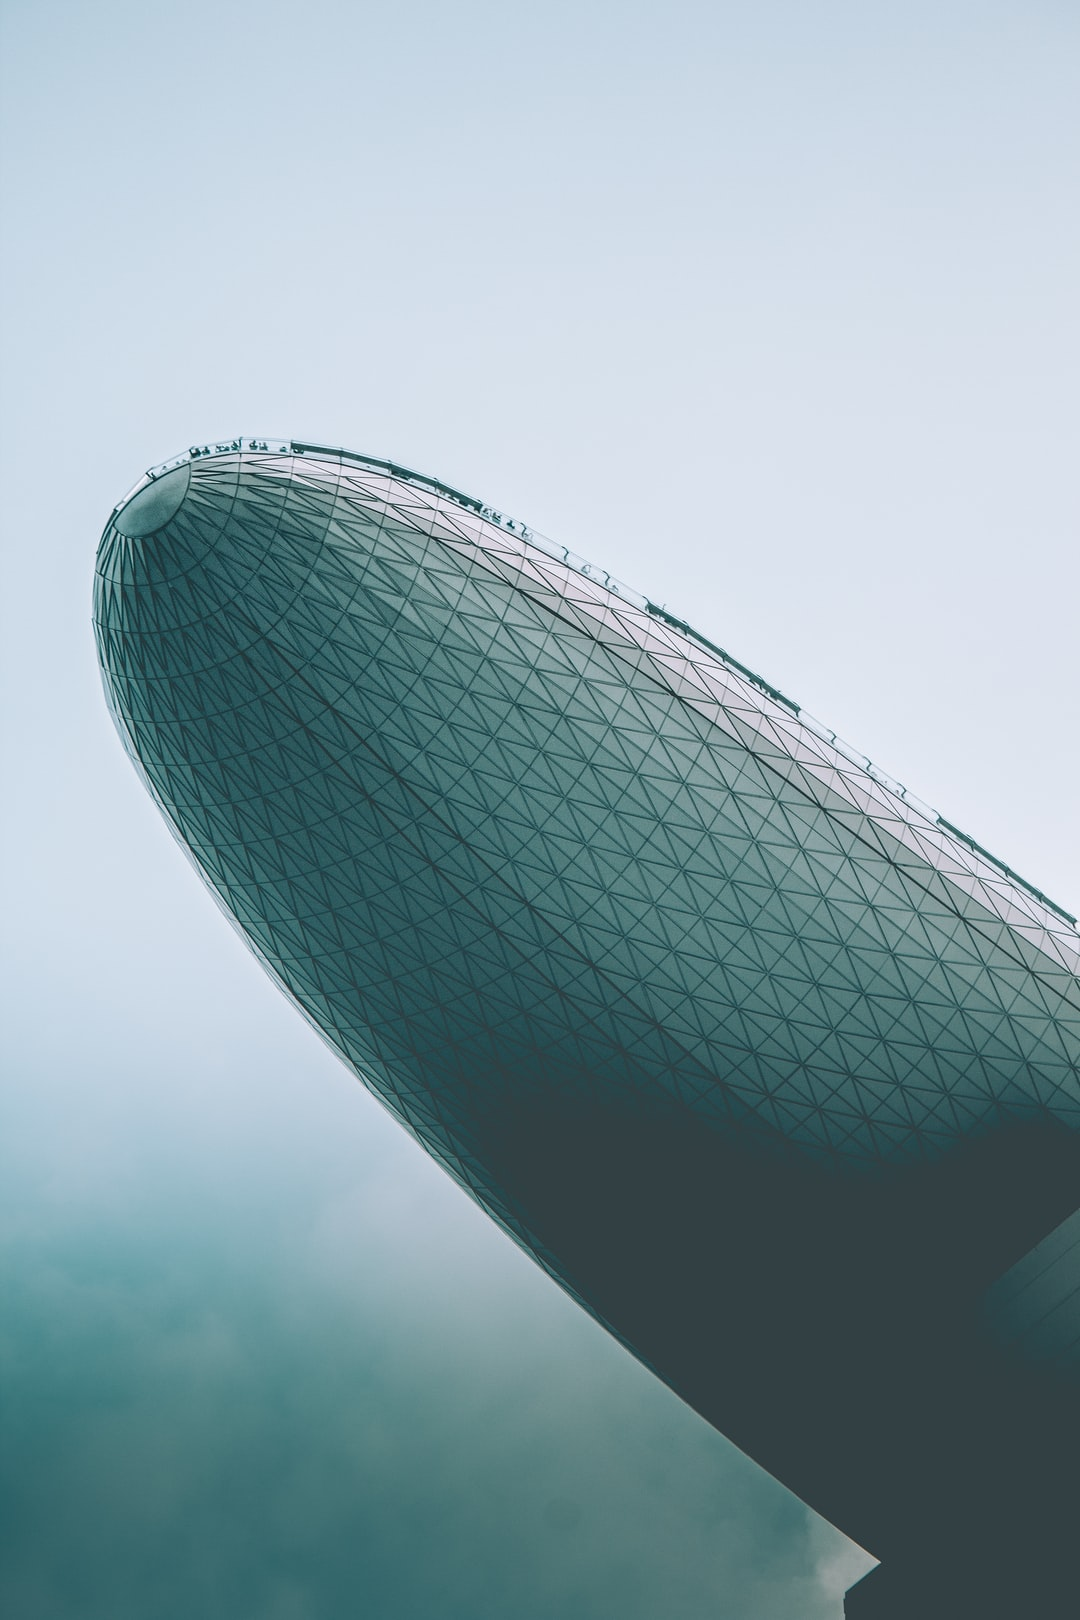 The underside of the Marina Bay Sands building in Singapore